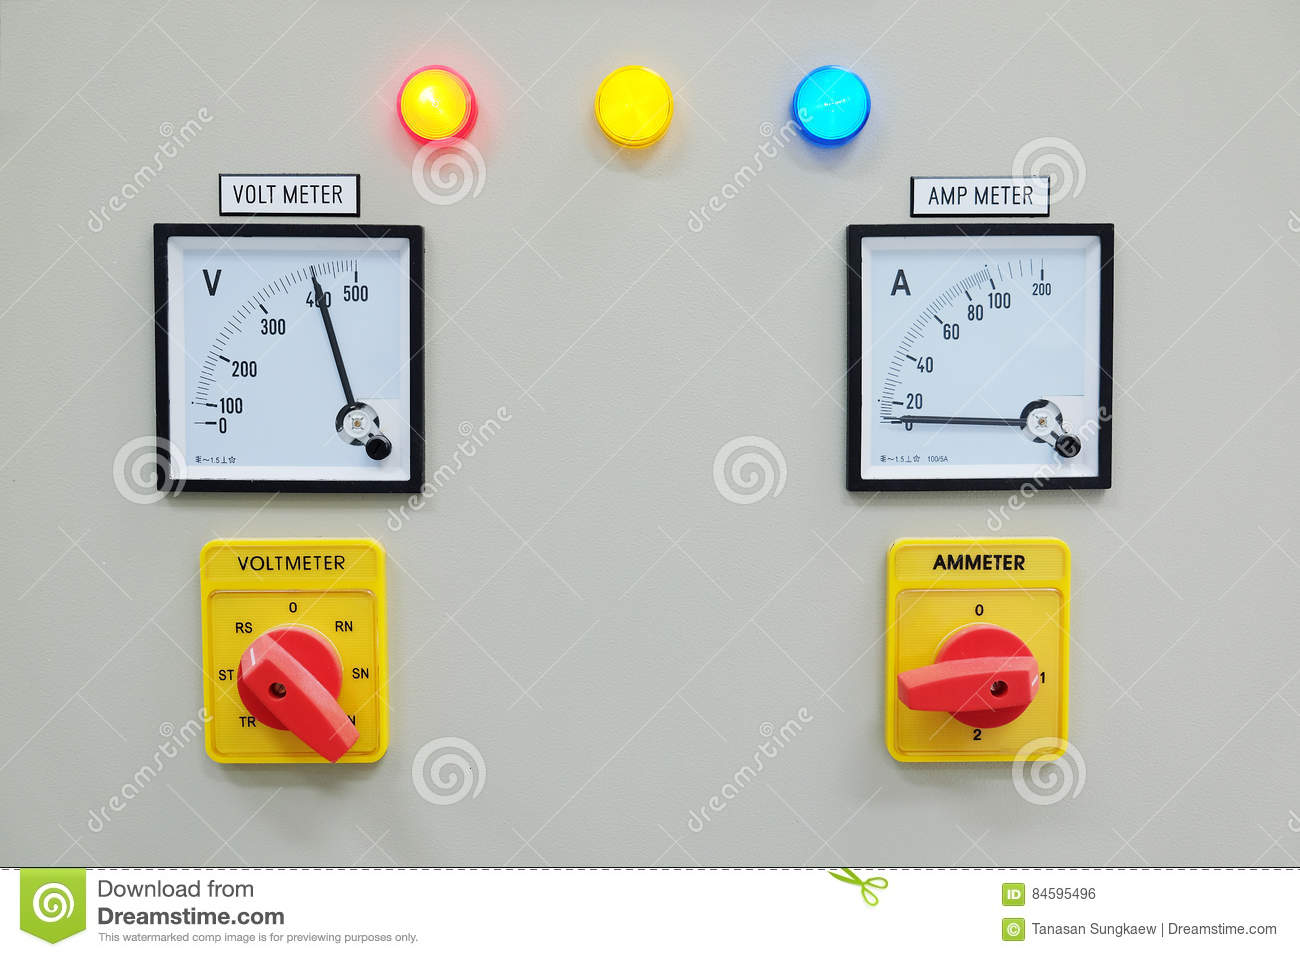 Hooking Up Voltmeter And Devices : Analog voltmeter amp meter and signal lamp on control